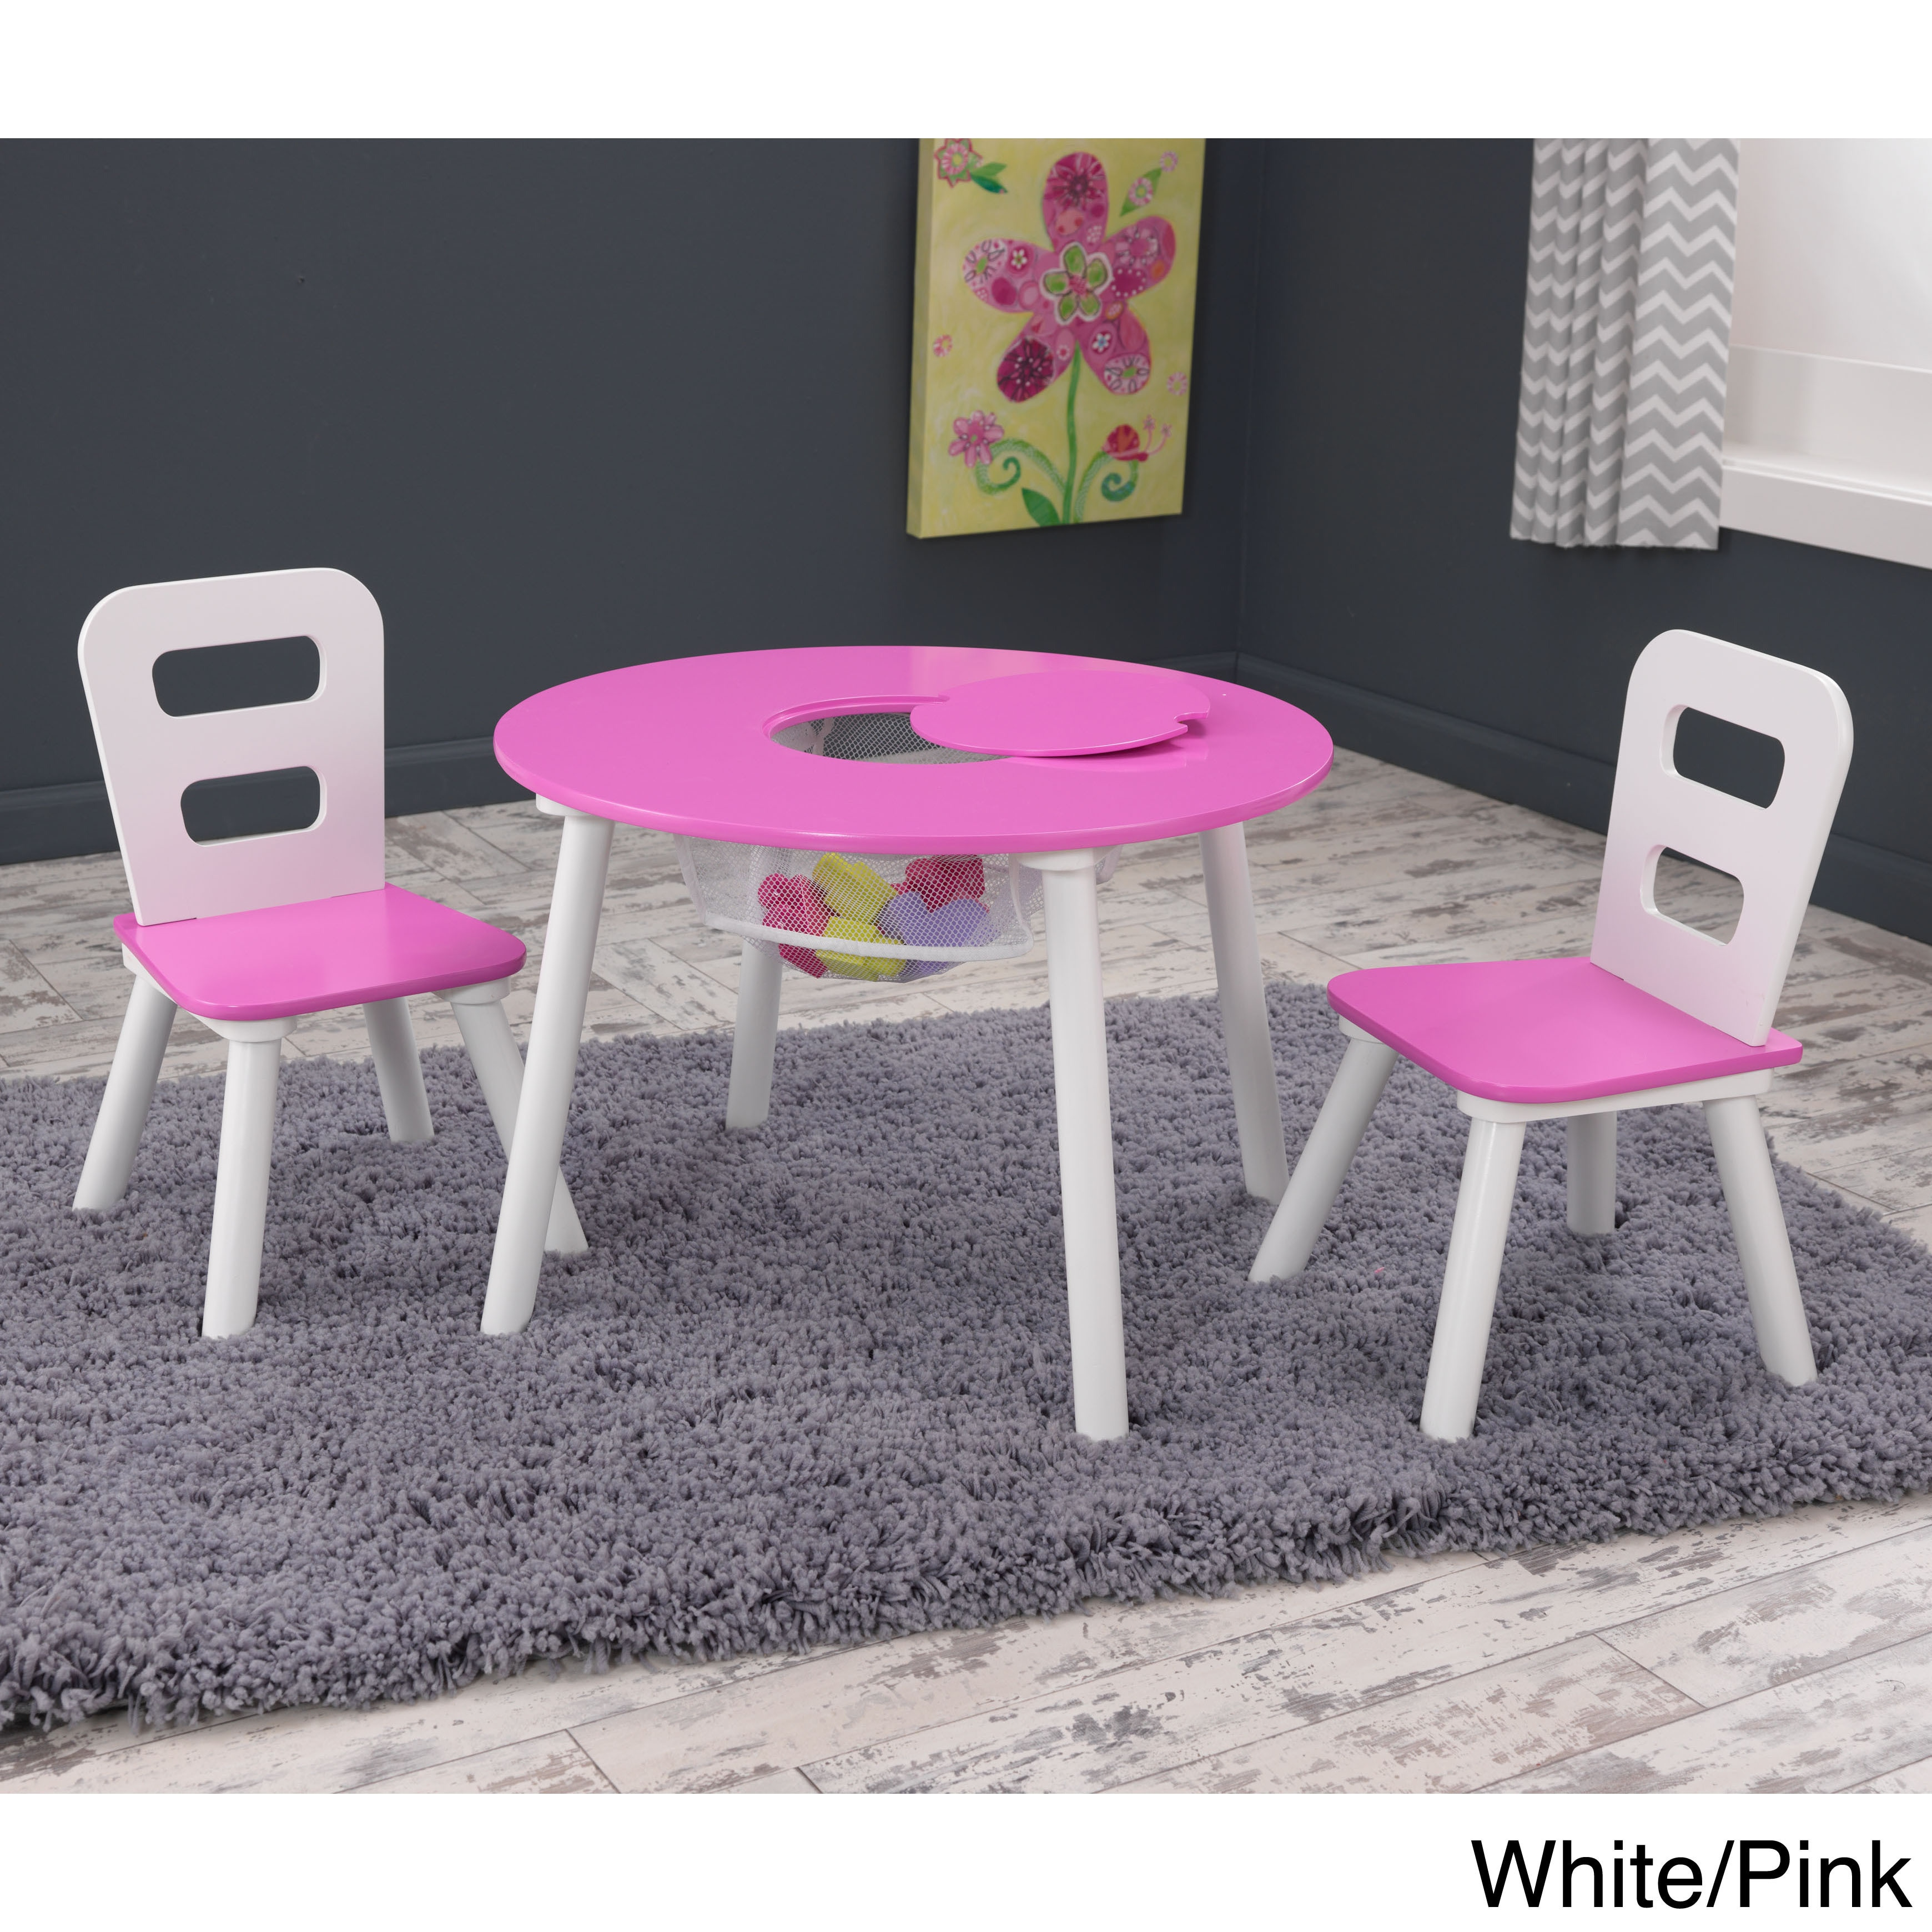 Prime Kidkraft 3 Piece Round Table And Chair Set Pabps2019 Chair Design Images Pabps2019Com